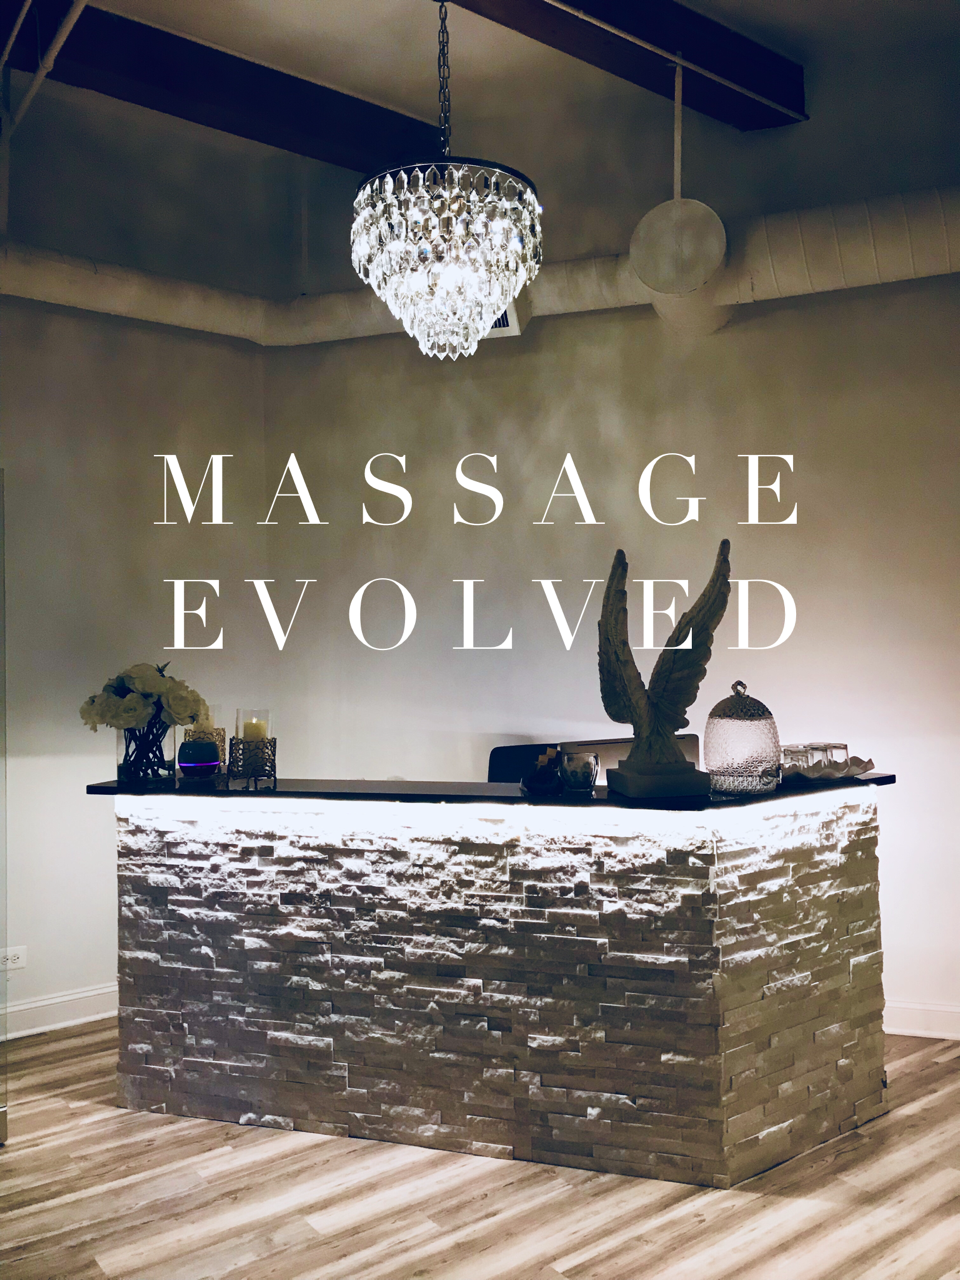 MASSAGE EVOLVED - 118 N. CLINTON STREET SUITE 205| CHICAGO IL 60661